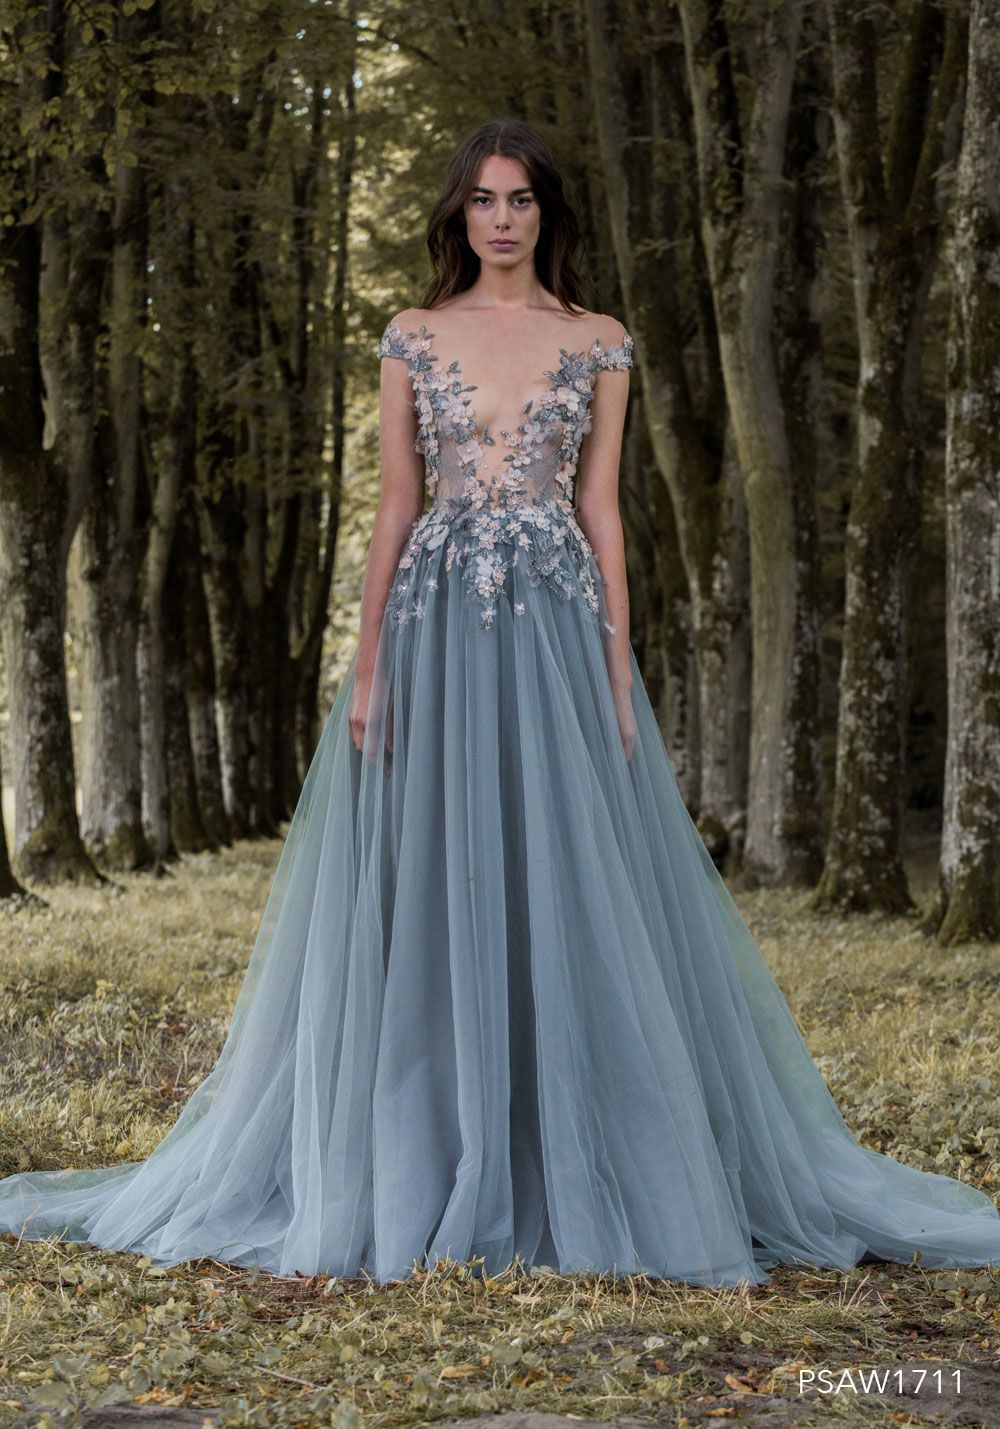 04ea05ee8448 2016-17 AW Couture